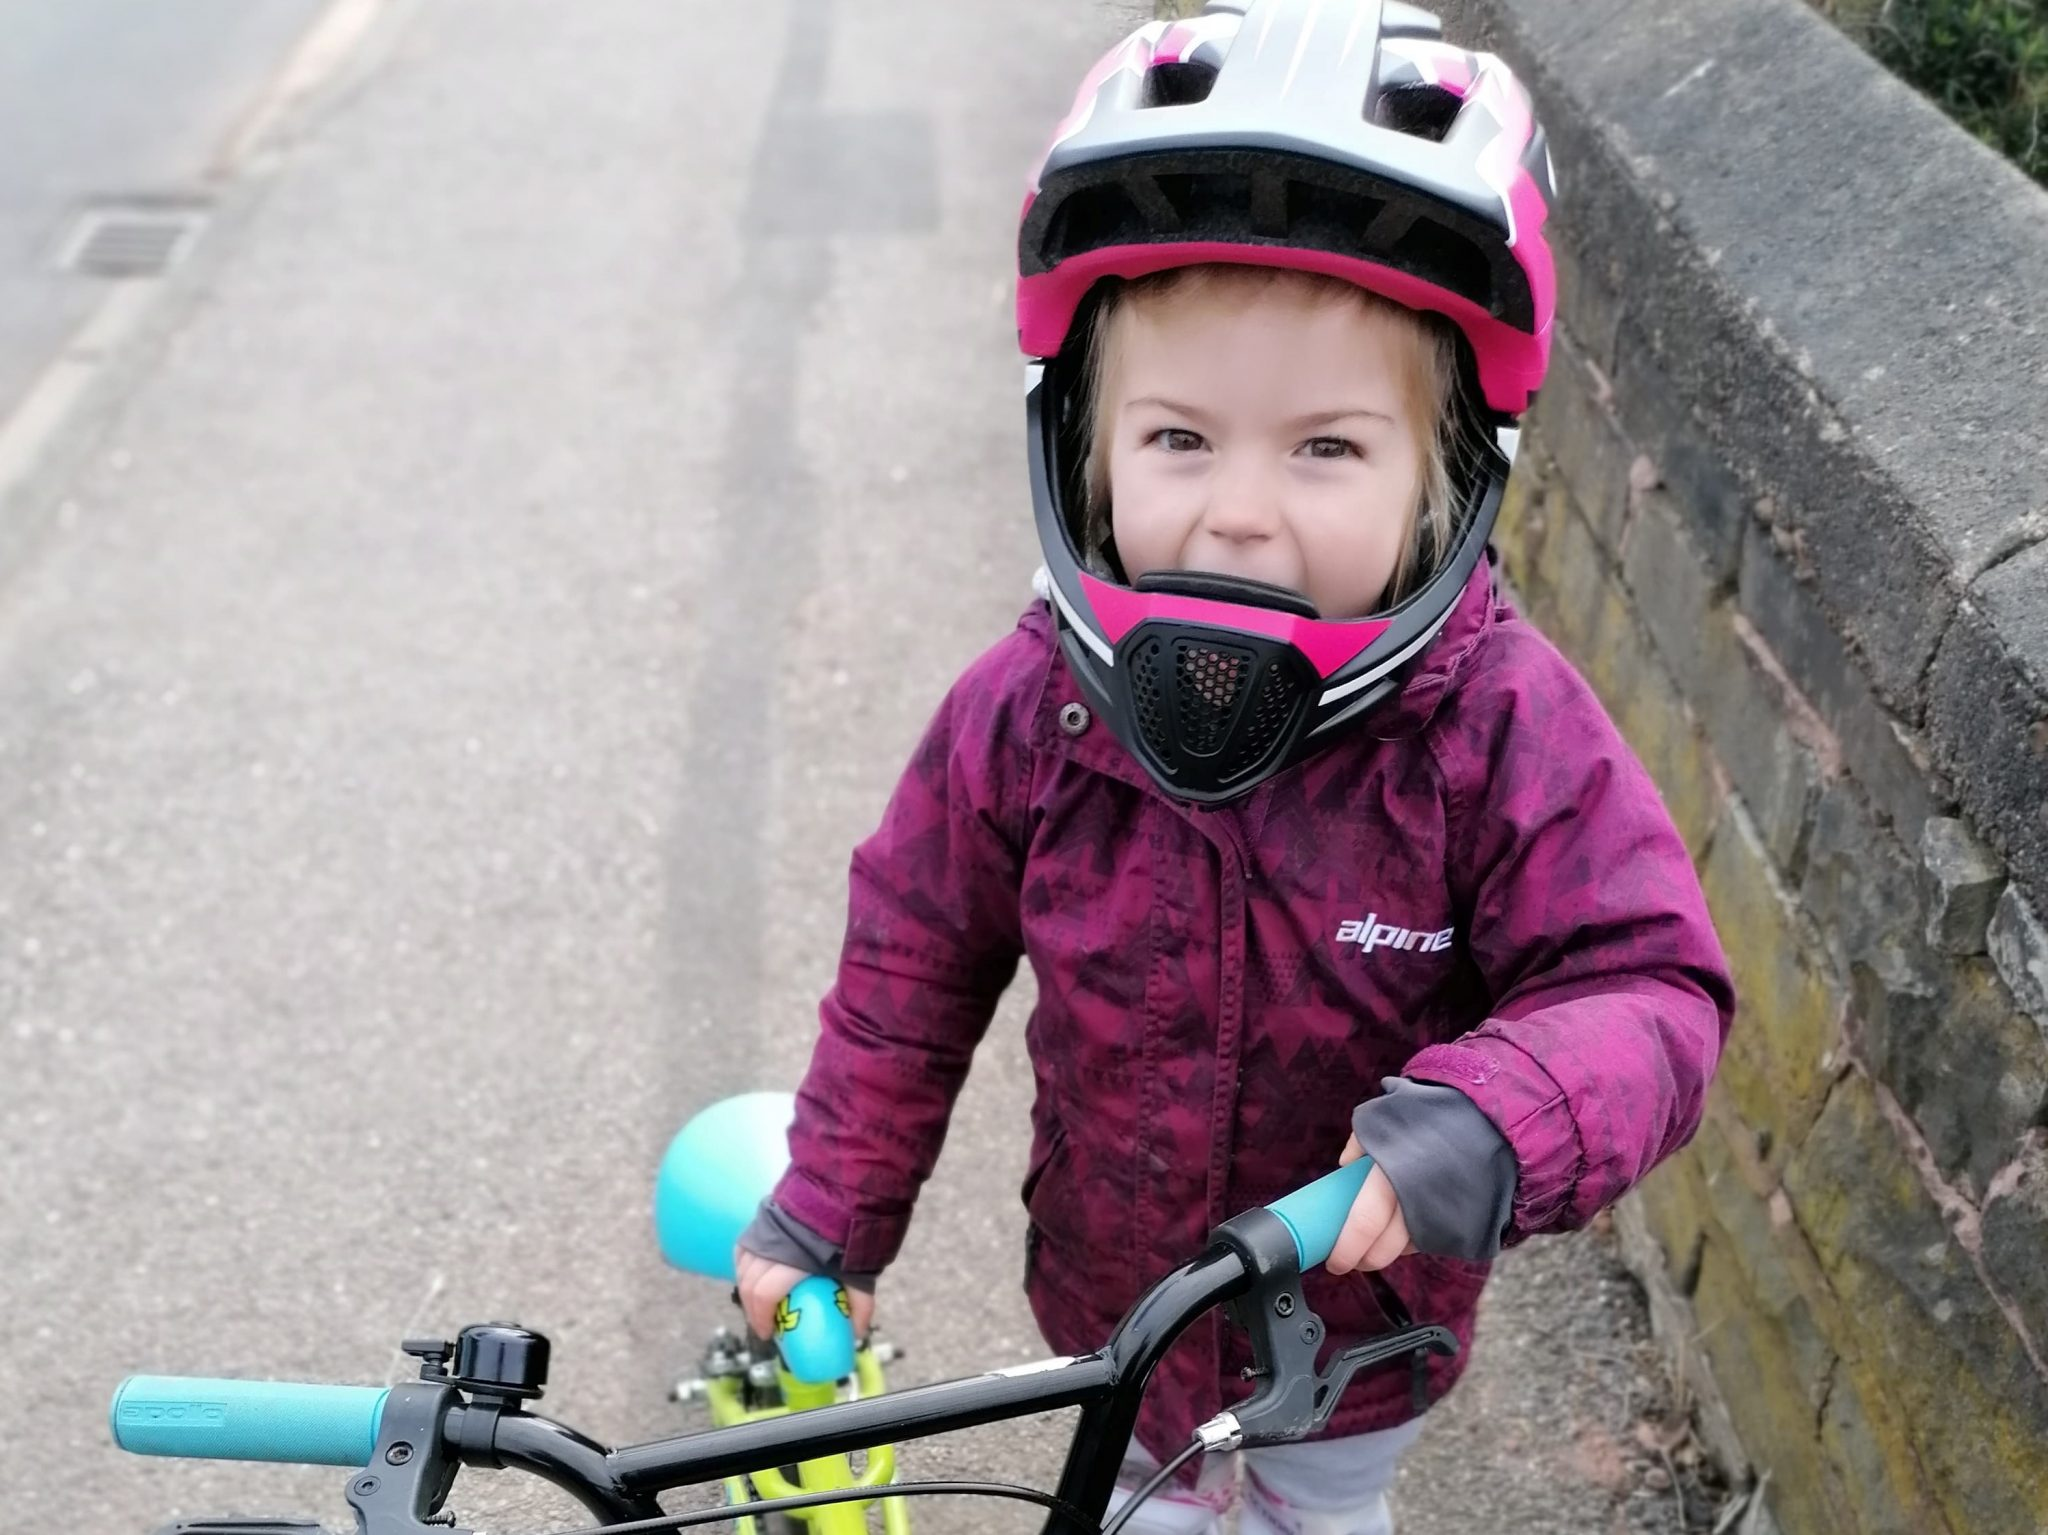 Four year old raises money for charity